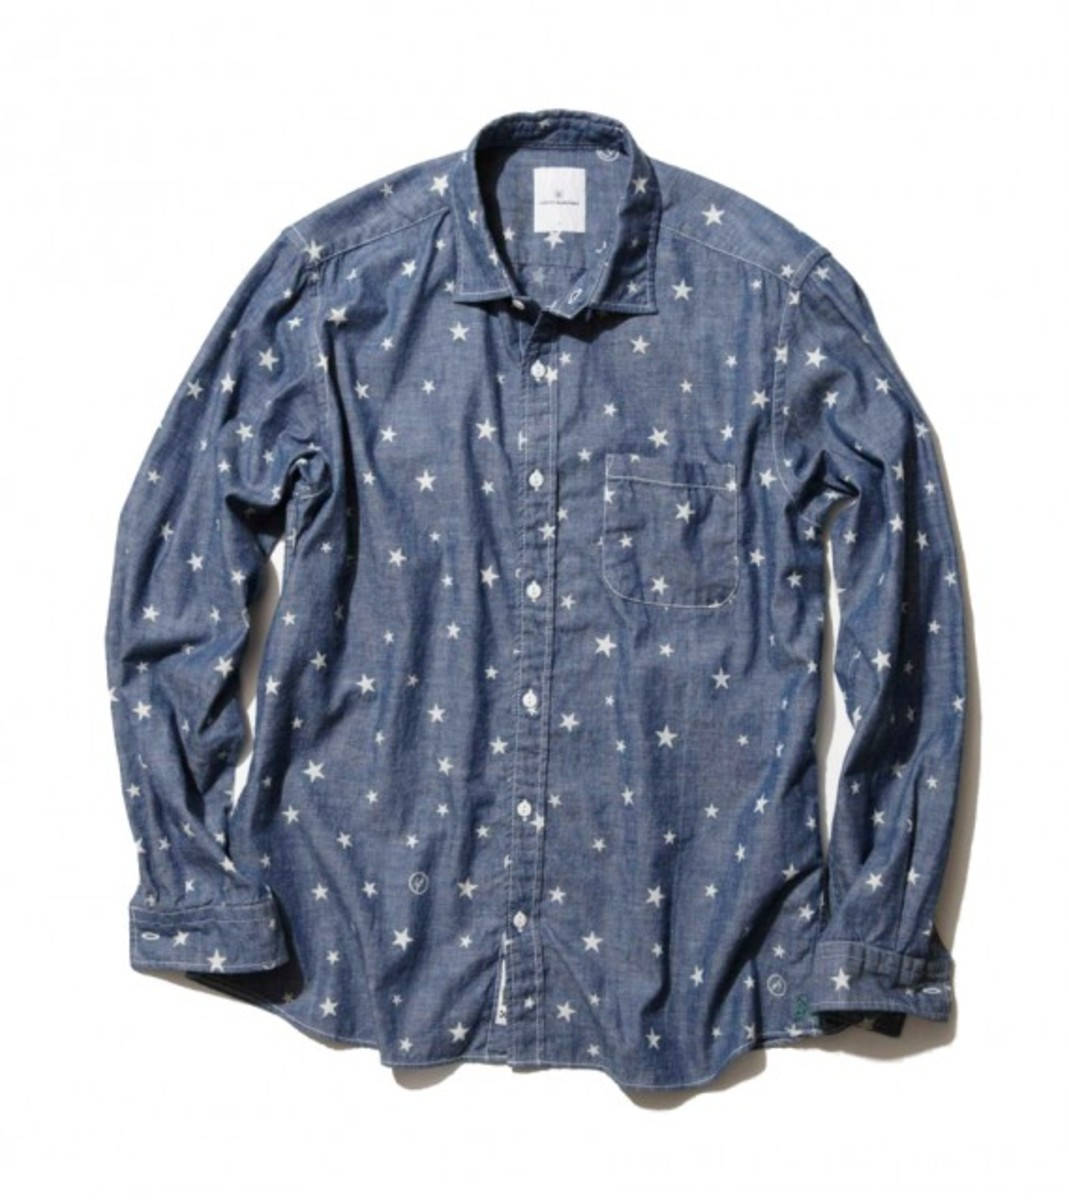 Cotton Chambray Star Pattern Shirt